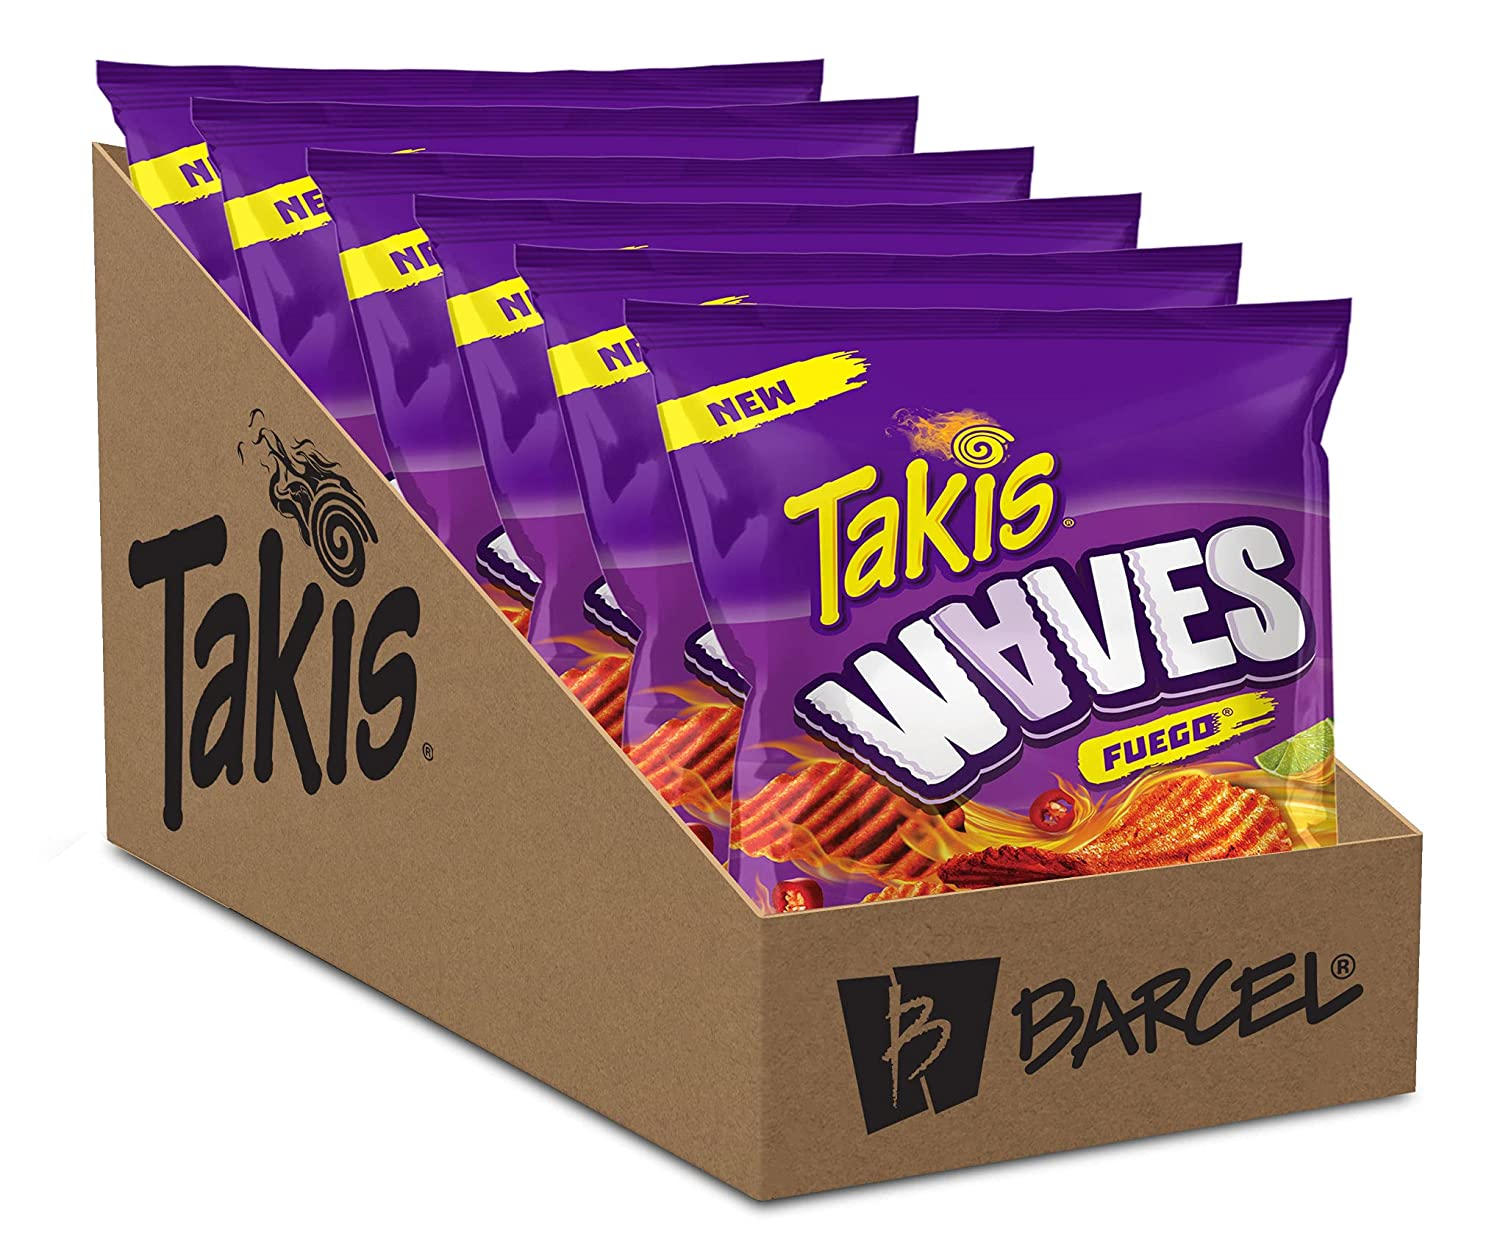 Takis Waves – Fuego Flavor Spicy Potato Chips (Hot Chili Pepper & Lime), 2.5 oz bag, 6 Count